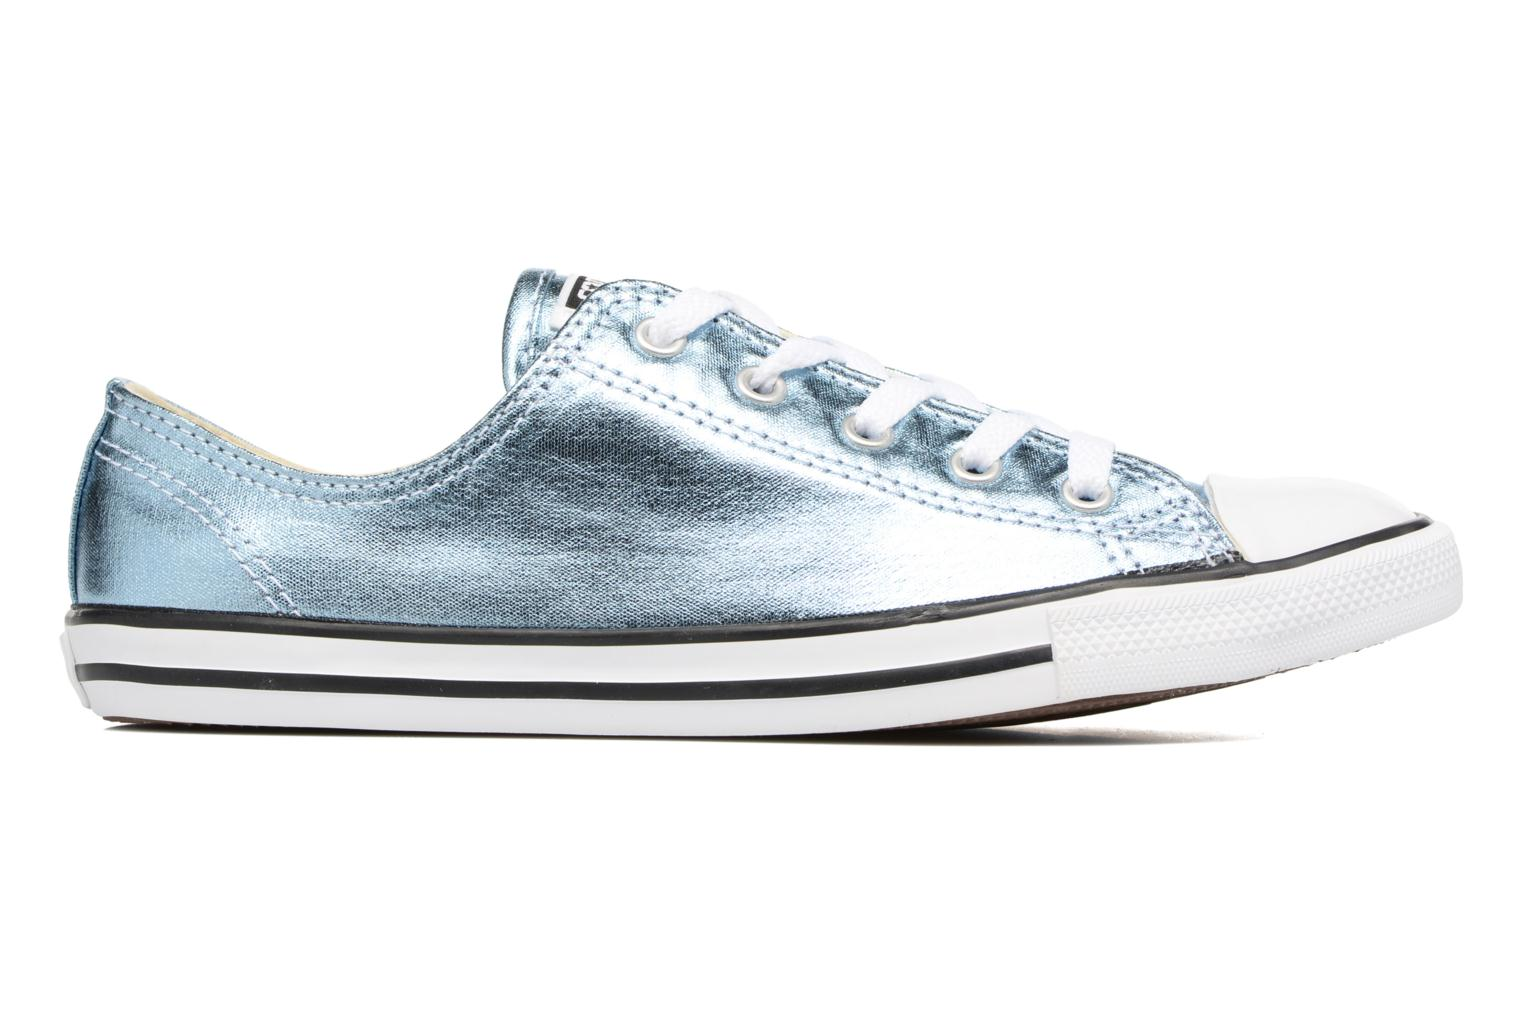 Chuck Black Coast Dainty Taylor Star All White Blue Ox Converse Metallics ATPdqwPB